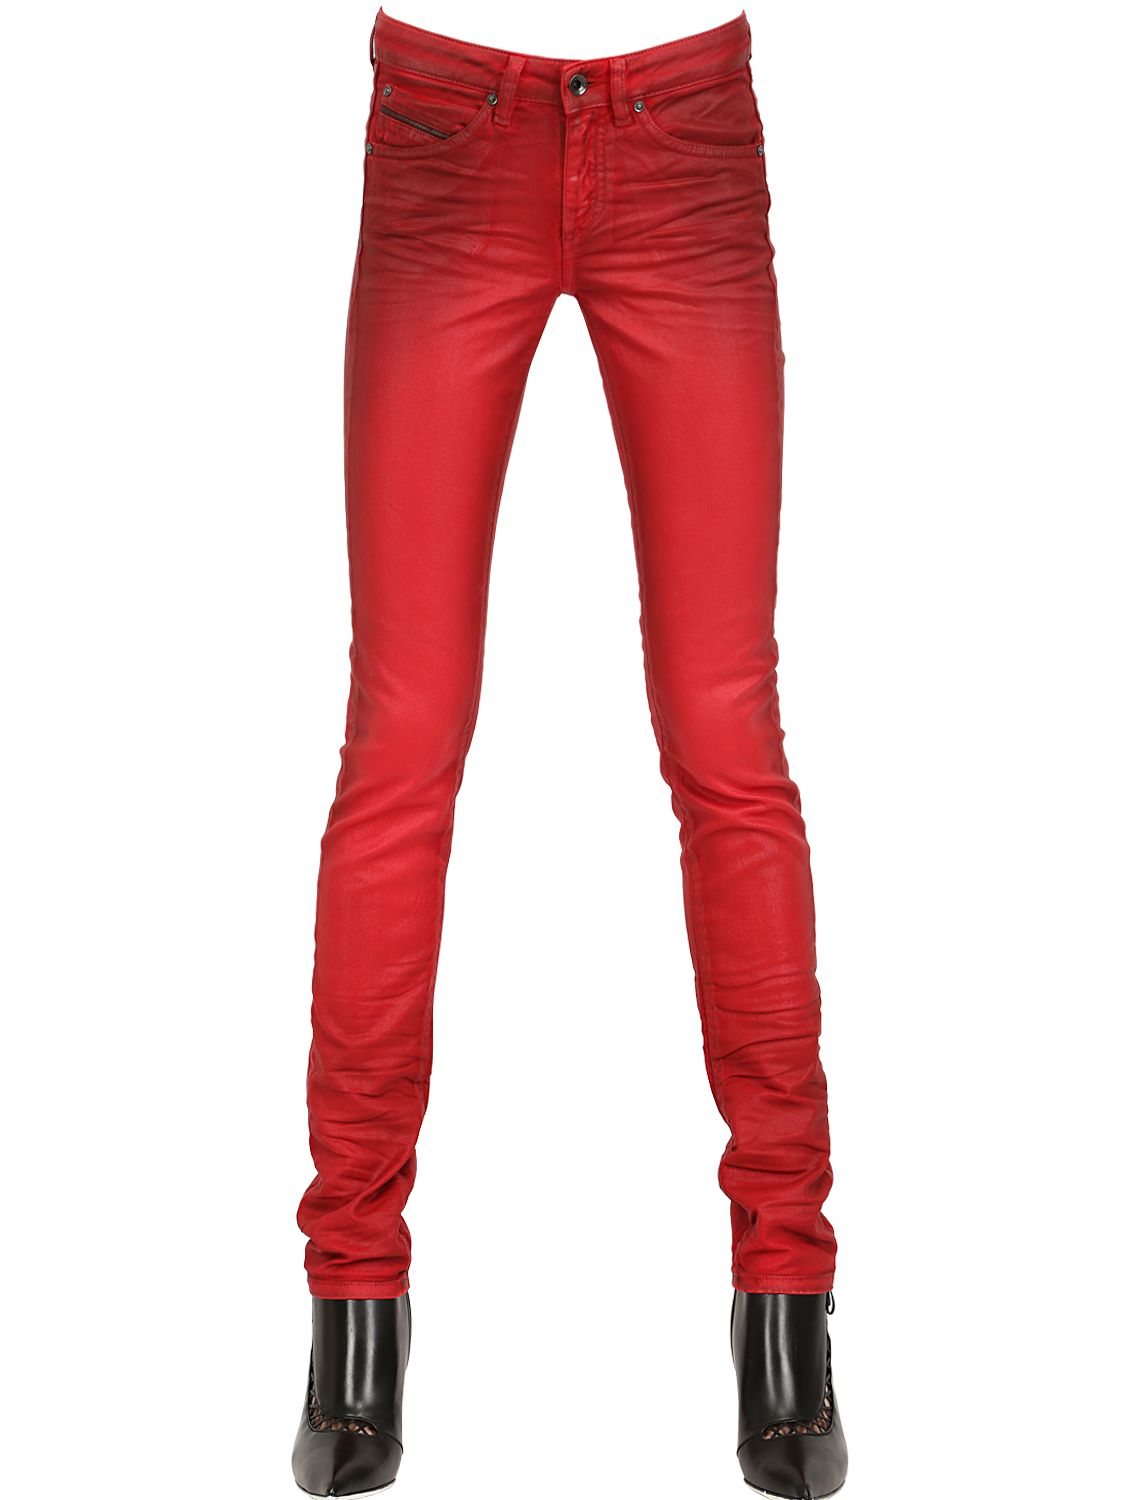 12ae2a7243 Diesel Black Gold Painted Stretch Shiny Denim Jeans in Red - Lyst